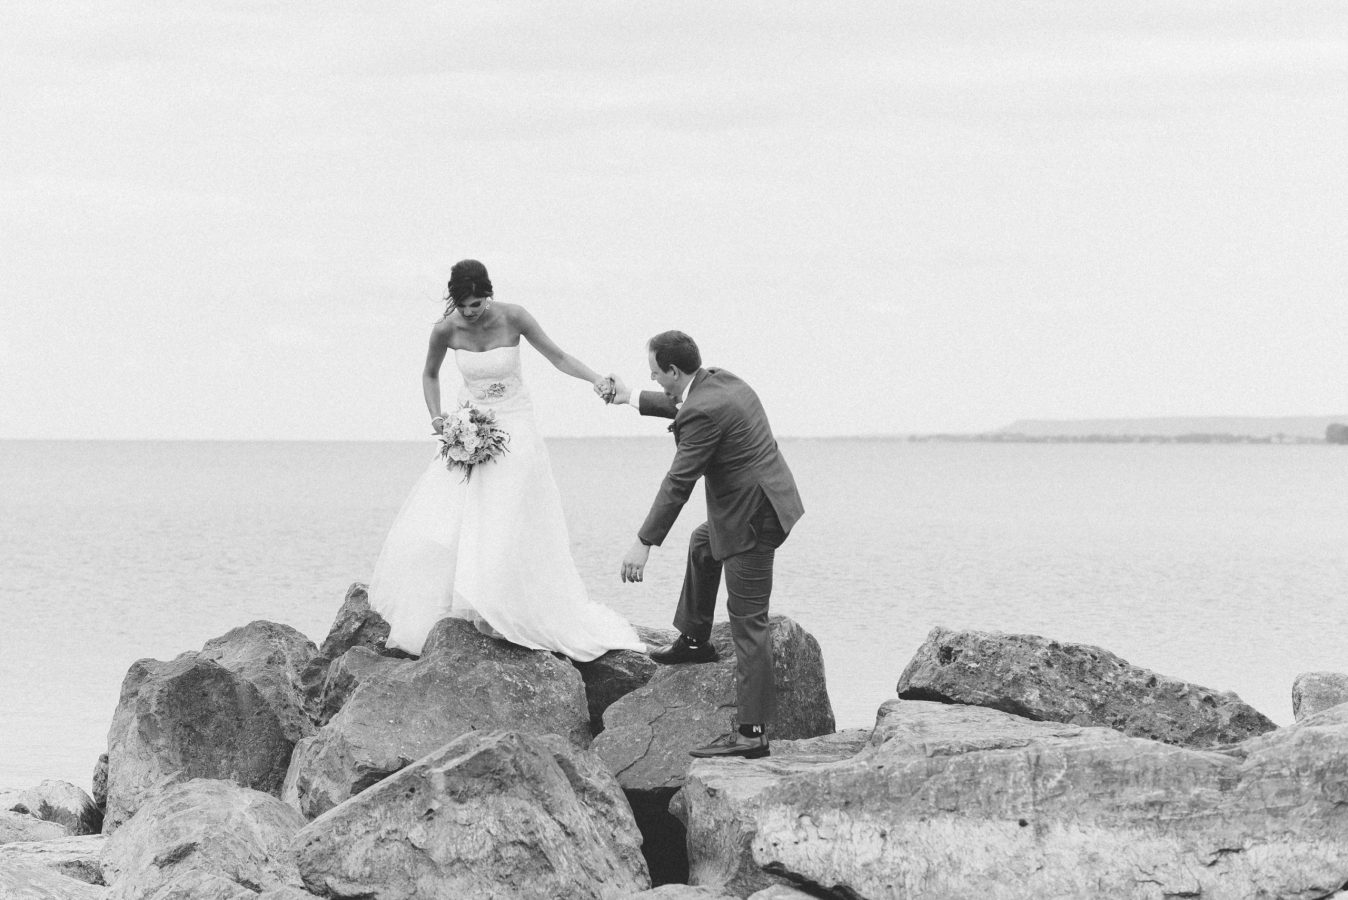 groom helps bride down from rocks at lakeview burlington wedding